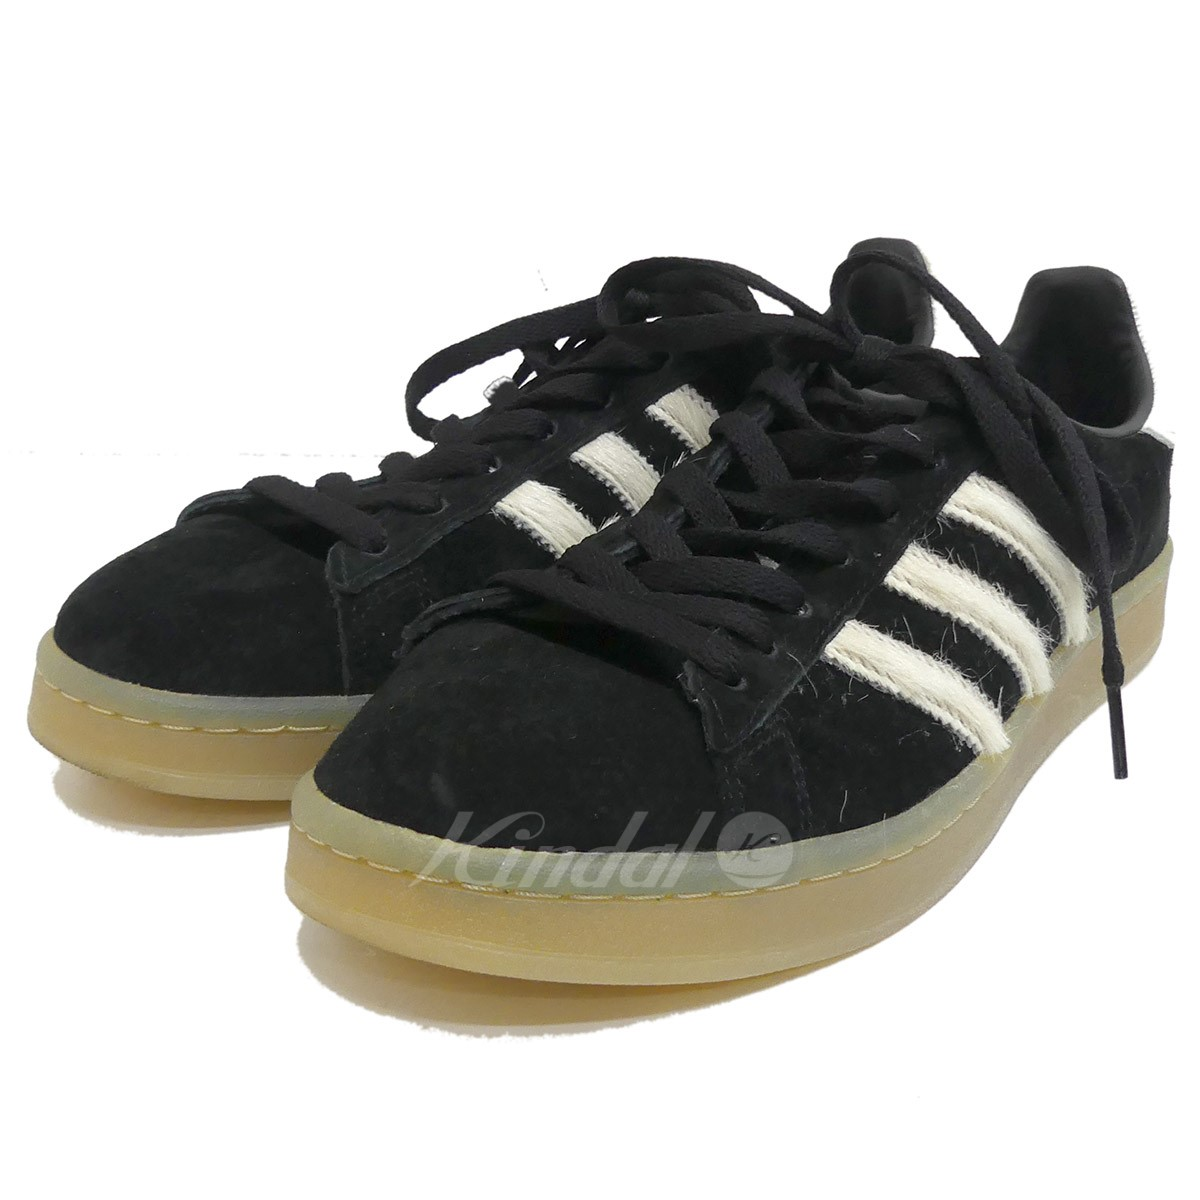 best loved 204b2 43188 Low-frequency cut sneakers ADIDAS CAMPUS CORE BLACKVINTAGE WHITE black  size US9